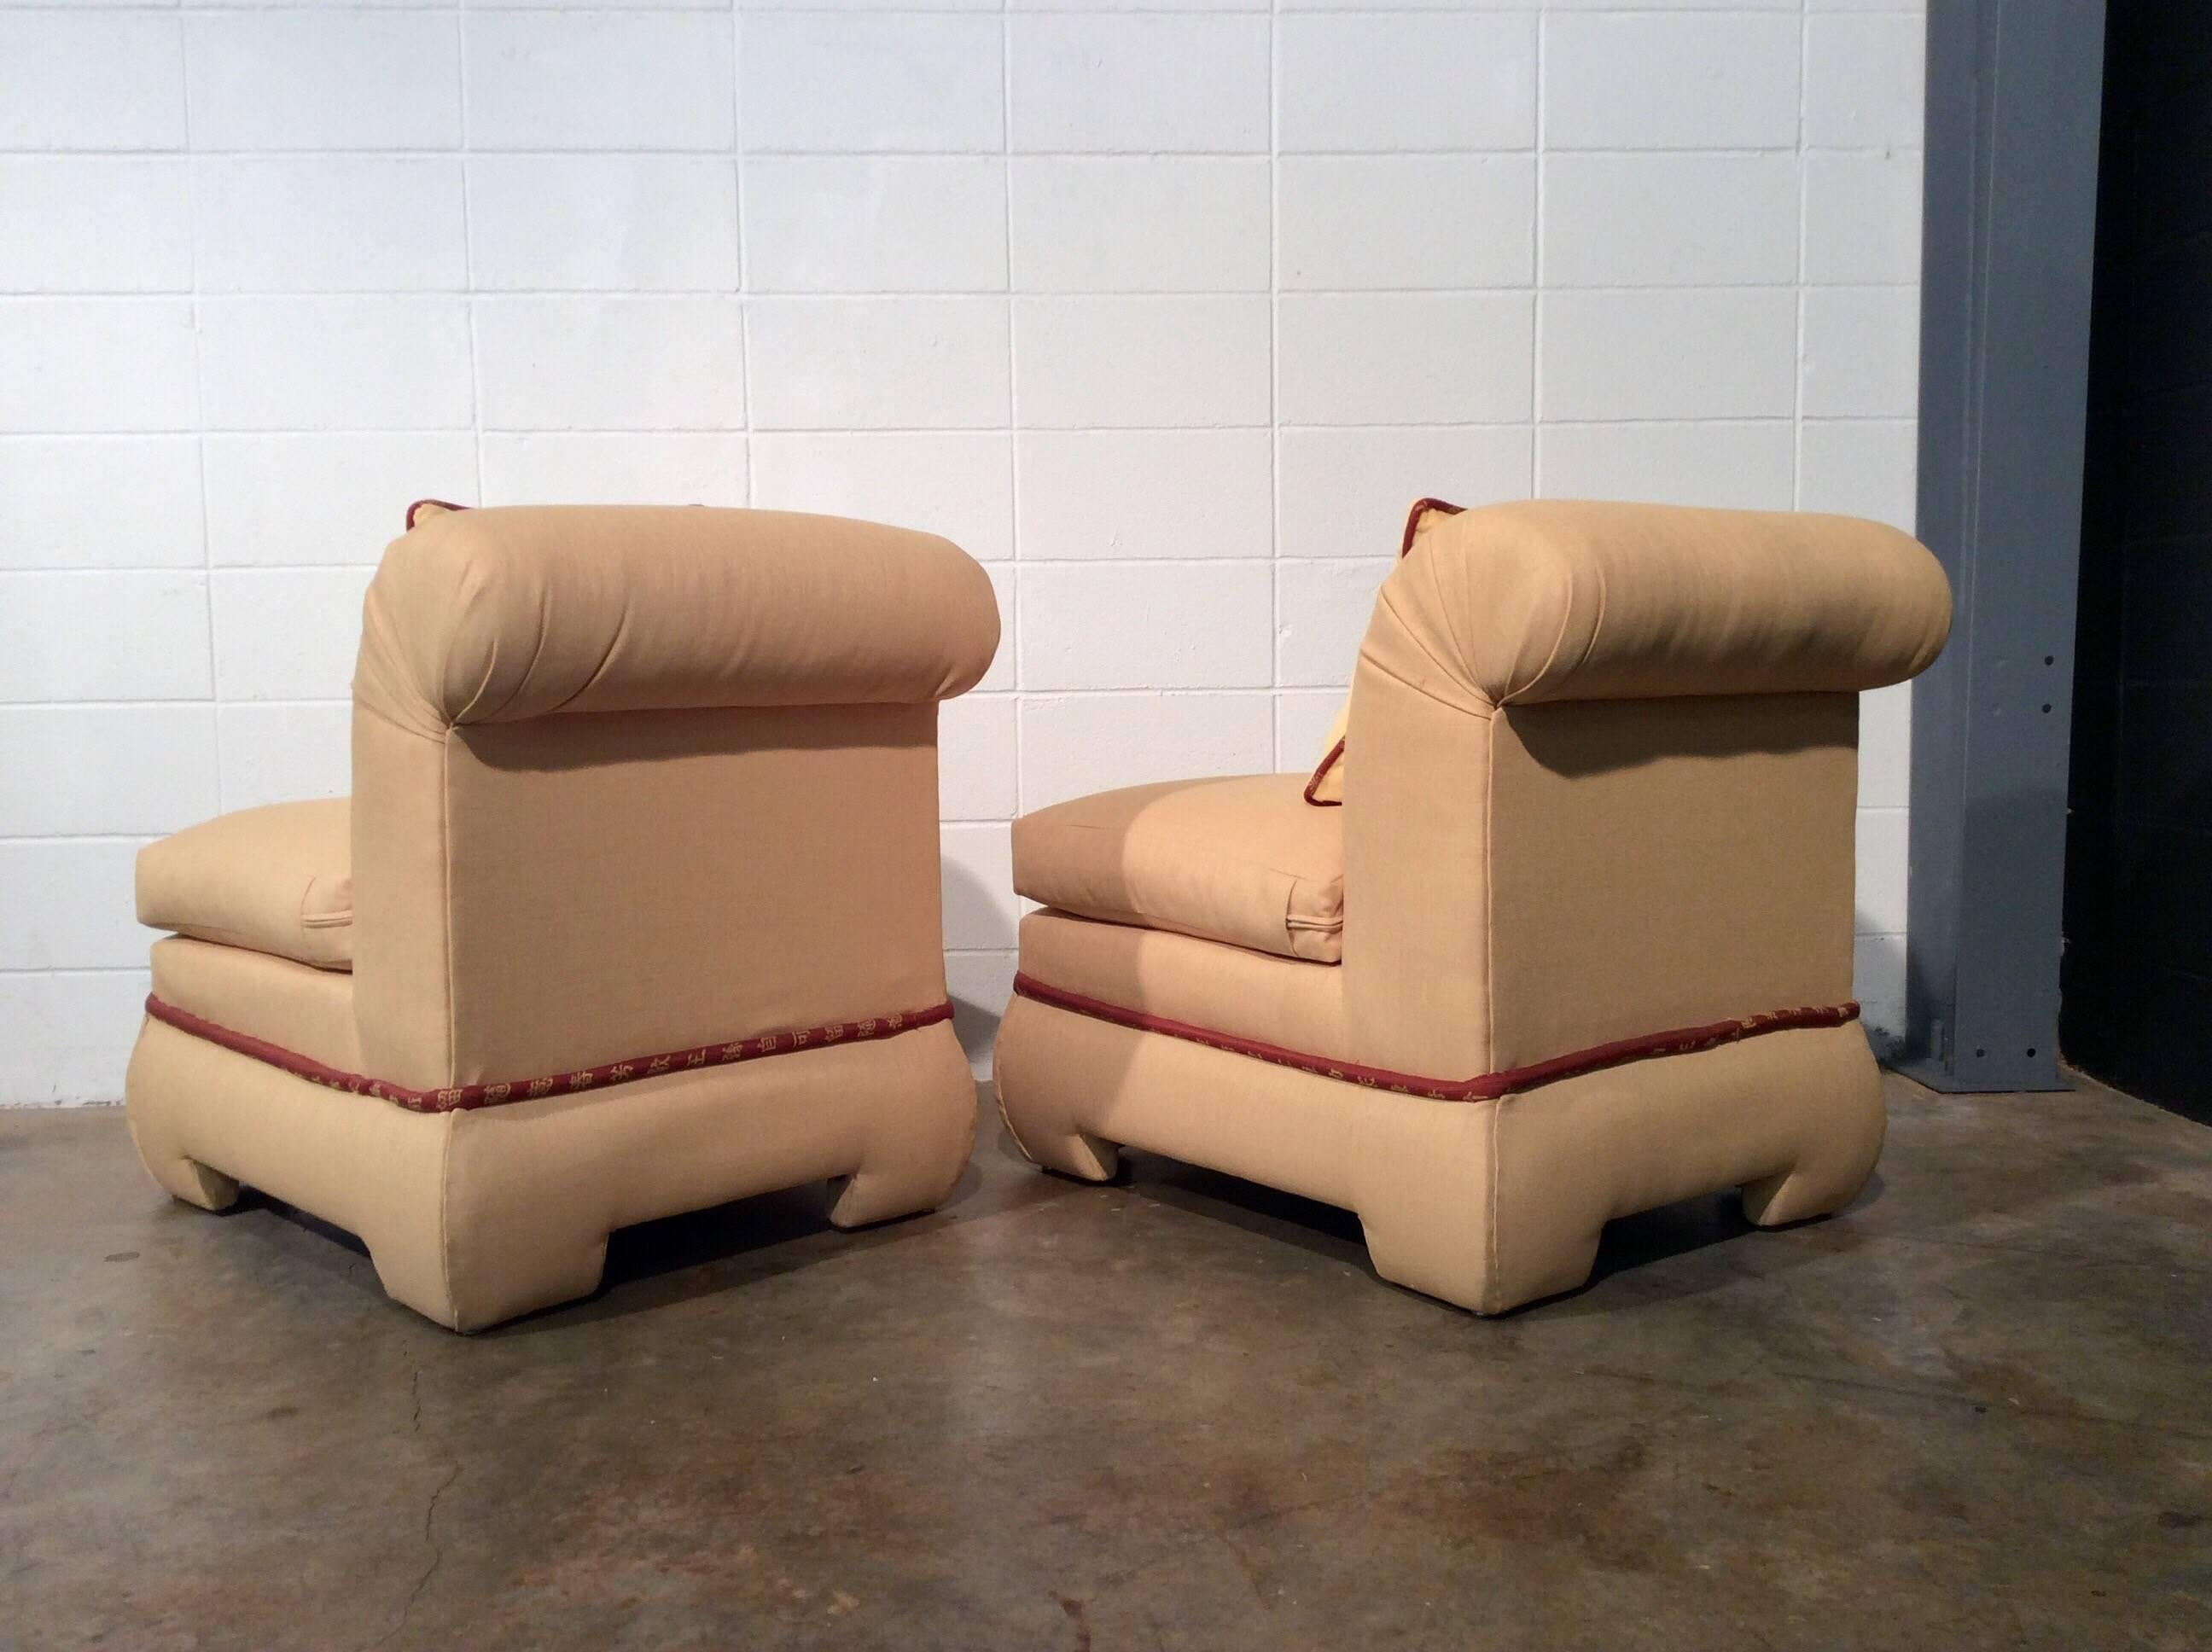 Late 20th Century Pair Of Fully Upholstered Rolled Back Chairs By Vanguard  Furniture For Sale